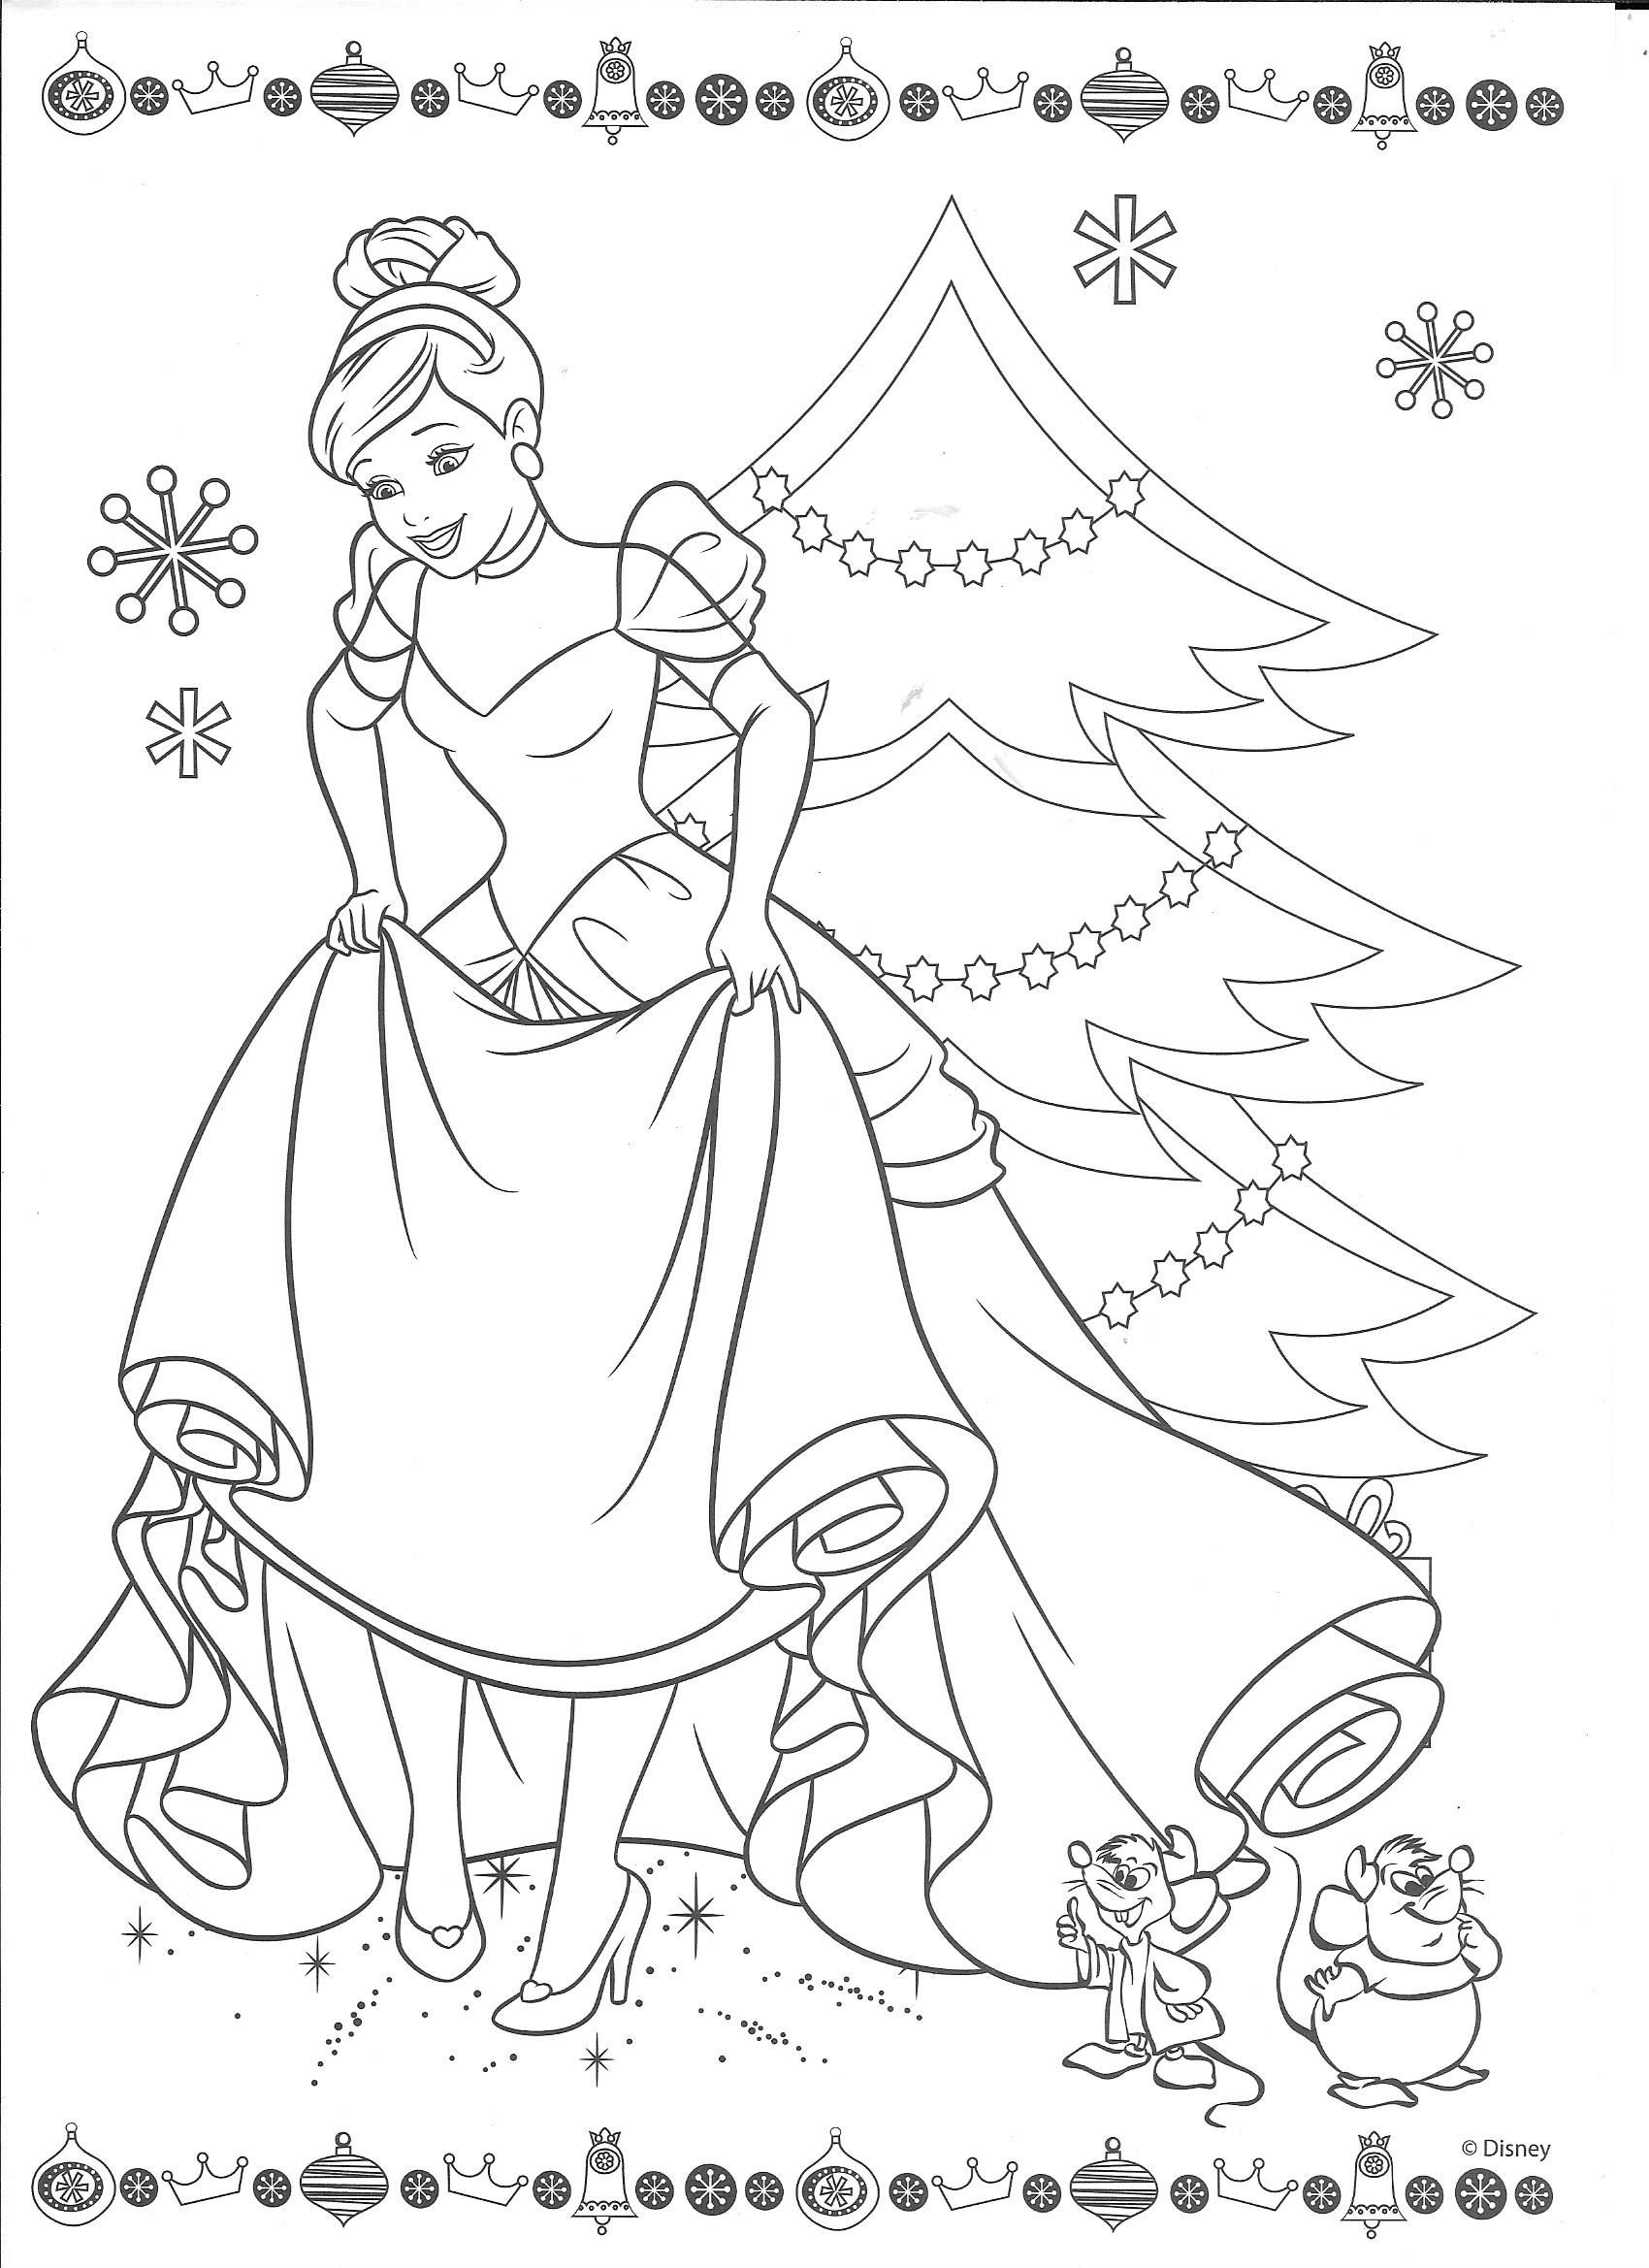 Cinderella Christmas Cinderella coloring pages, Disney